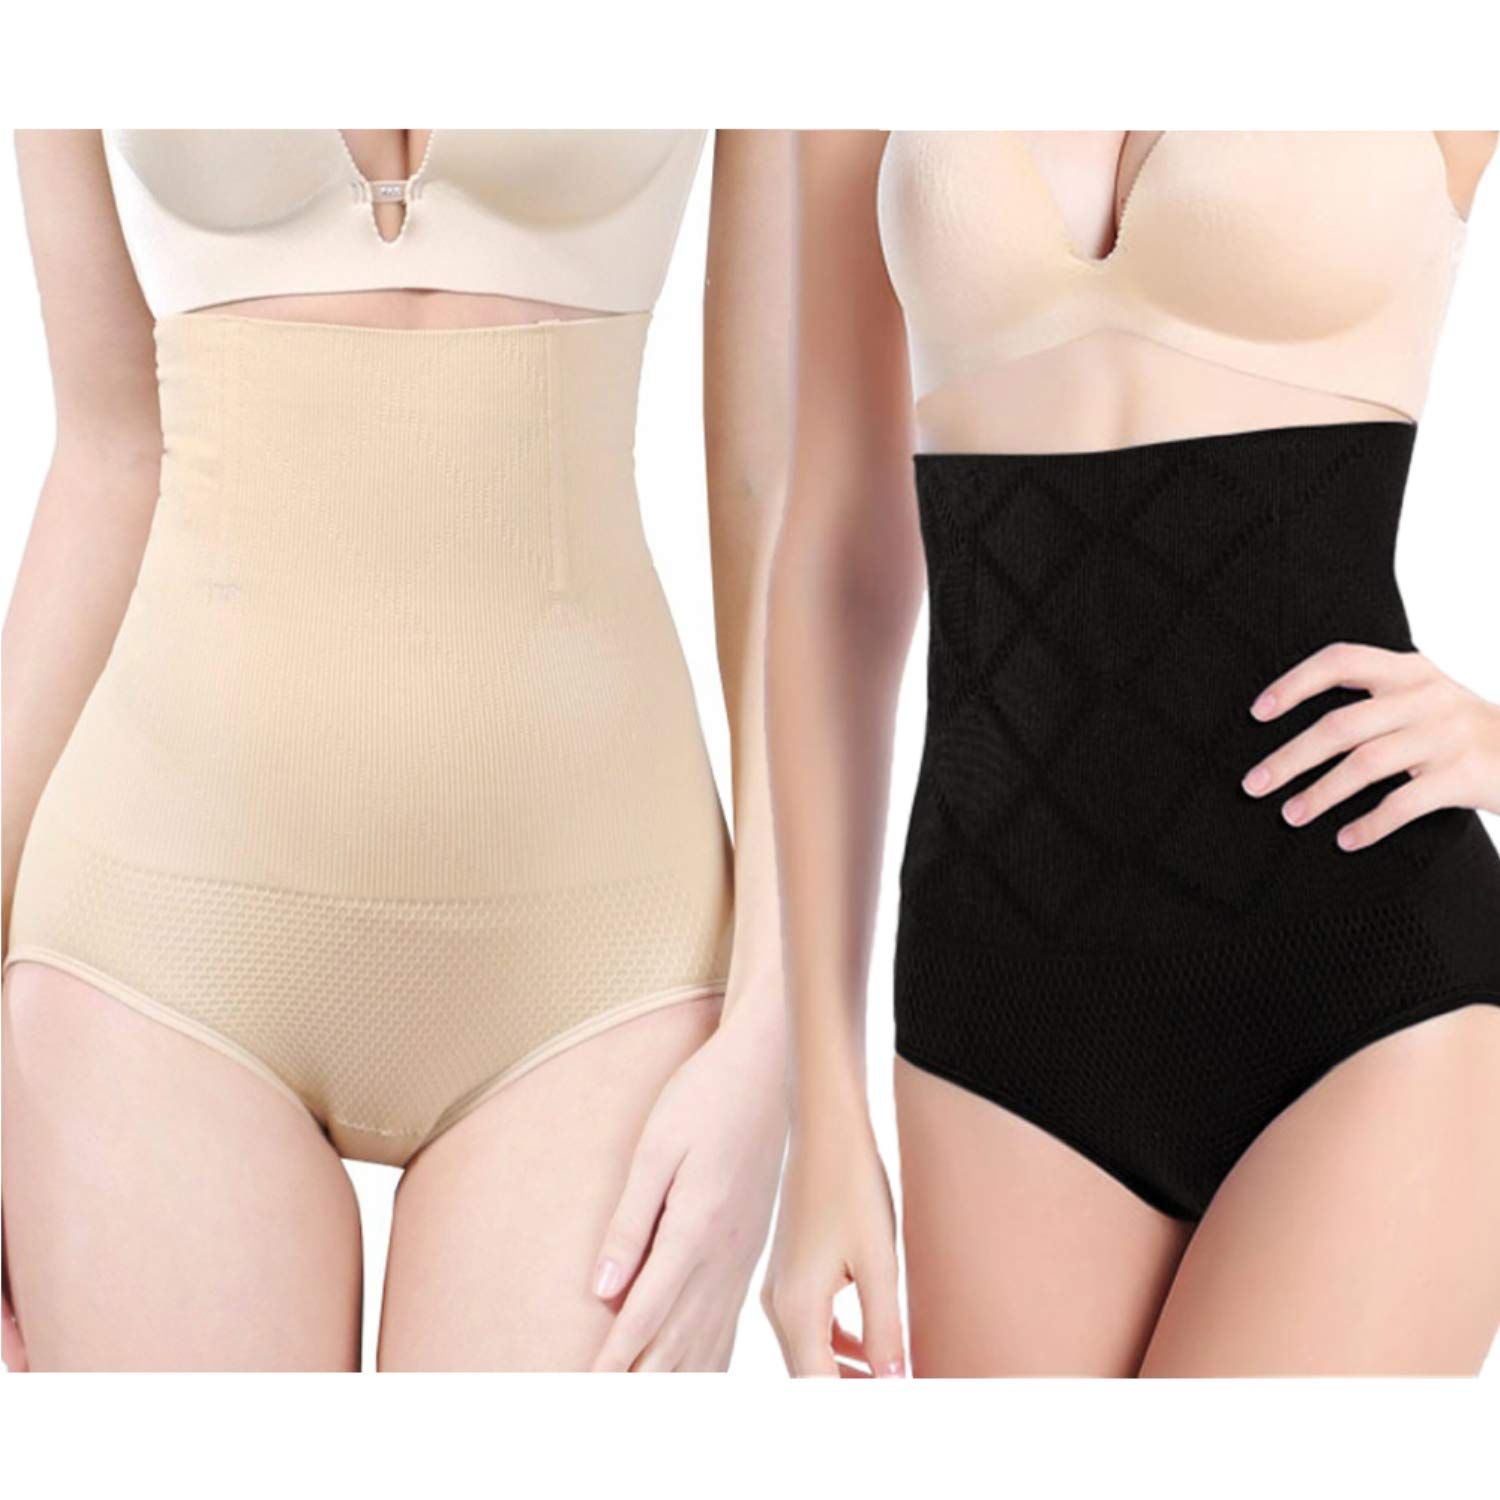 1f2c88fed0 2-Pack Ultra High Waist Body Shaper Slimming Panties 360 Tummy Control  Stomach Trimmer Shapewear Butt Lifter Body Shaper at Amazon Women s  Clothing store